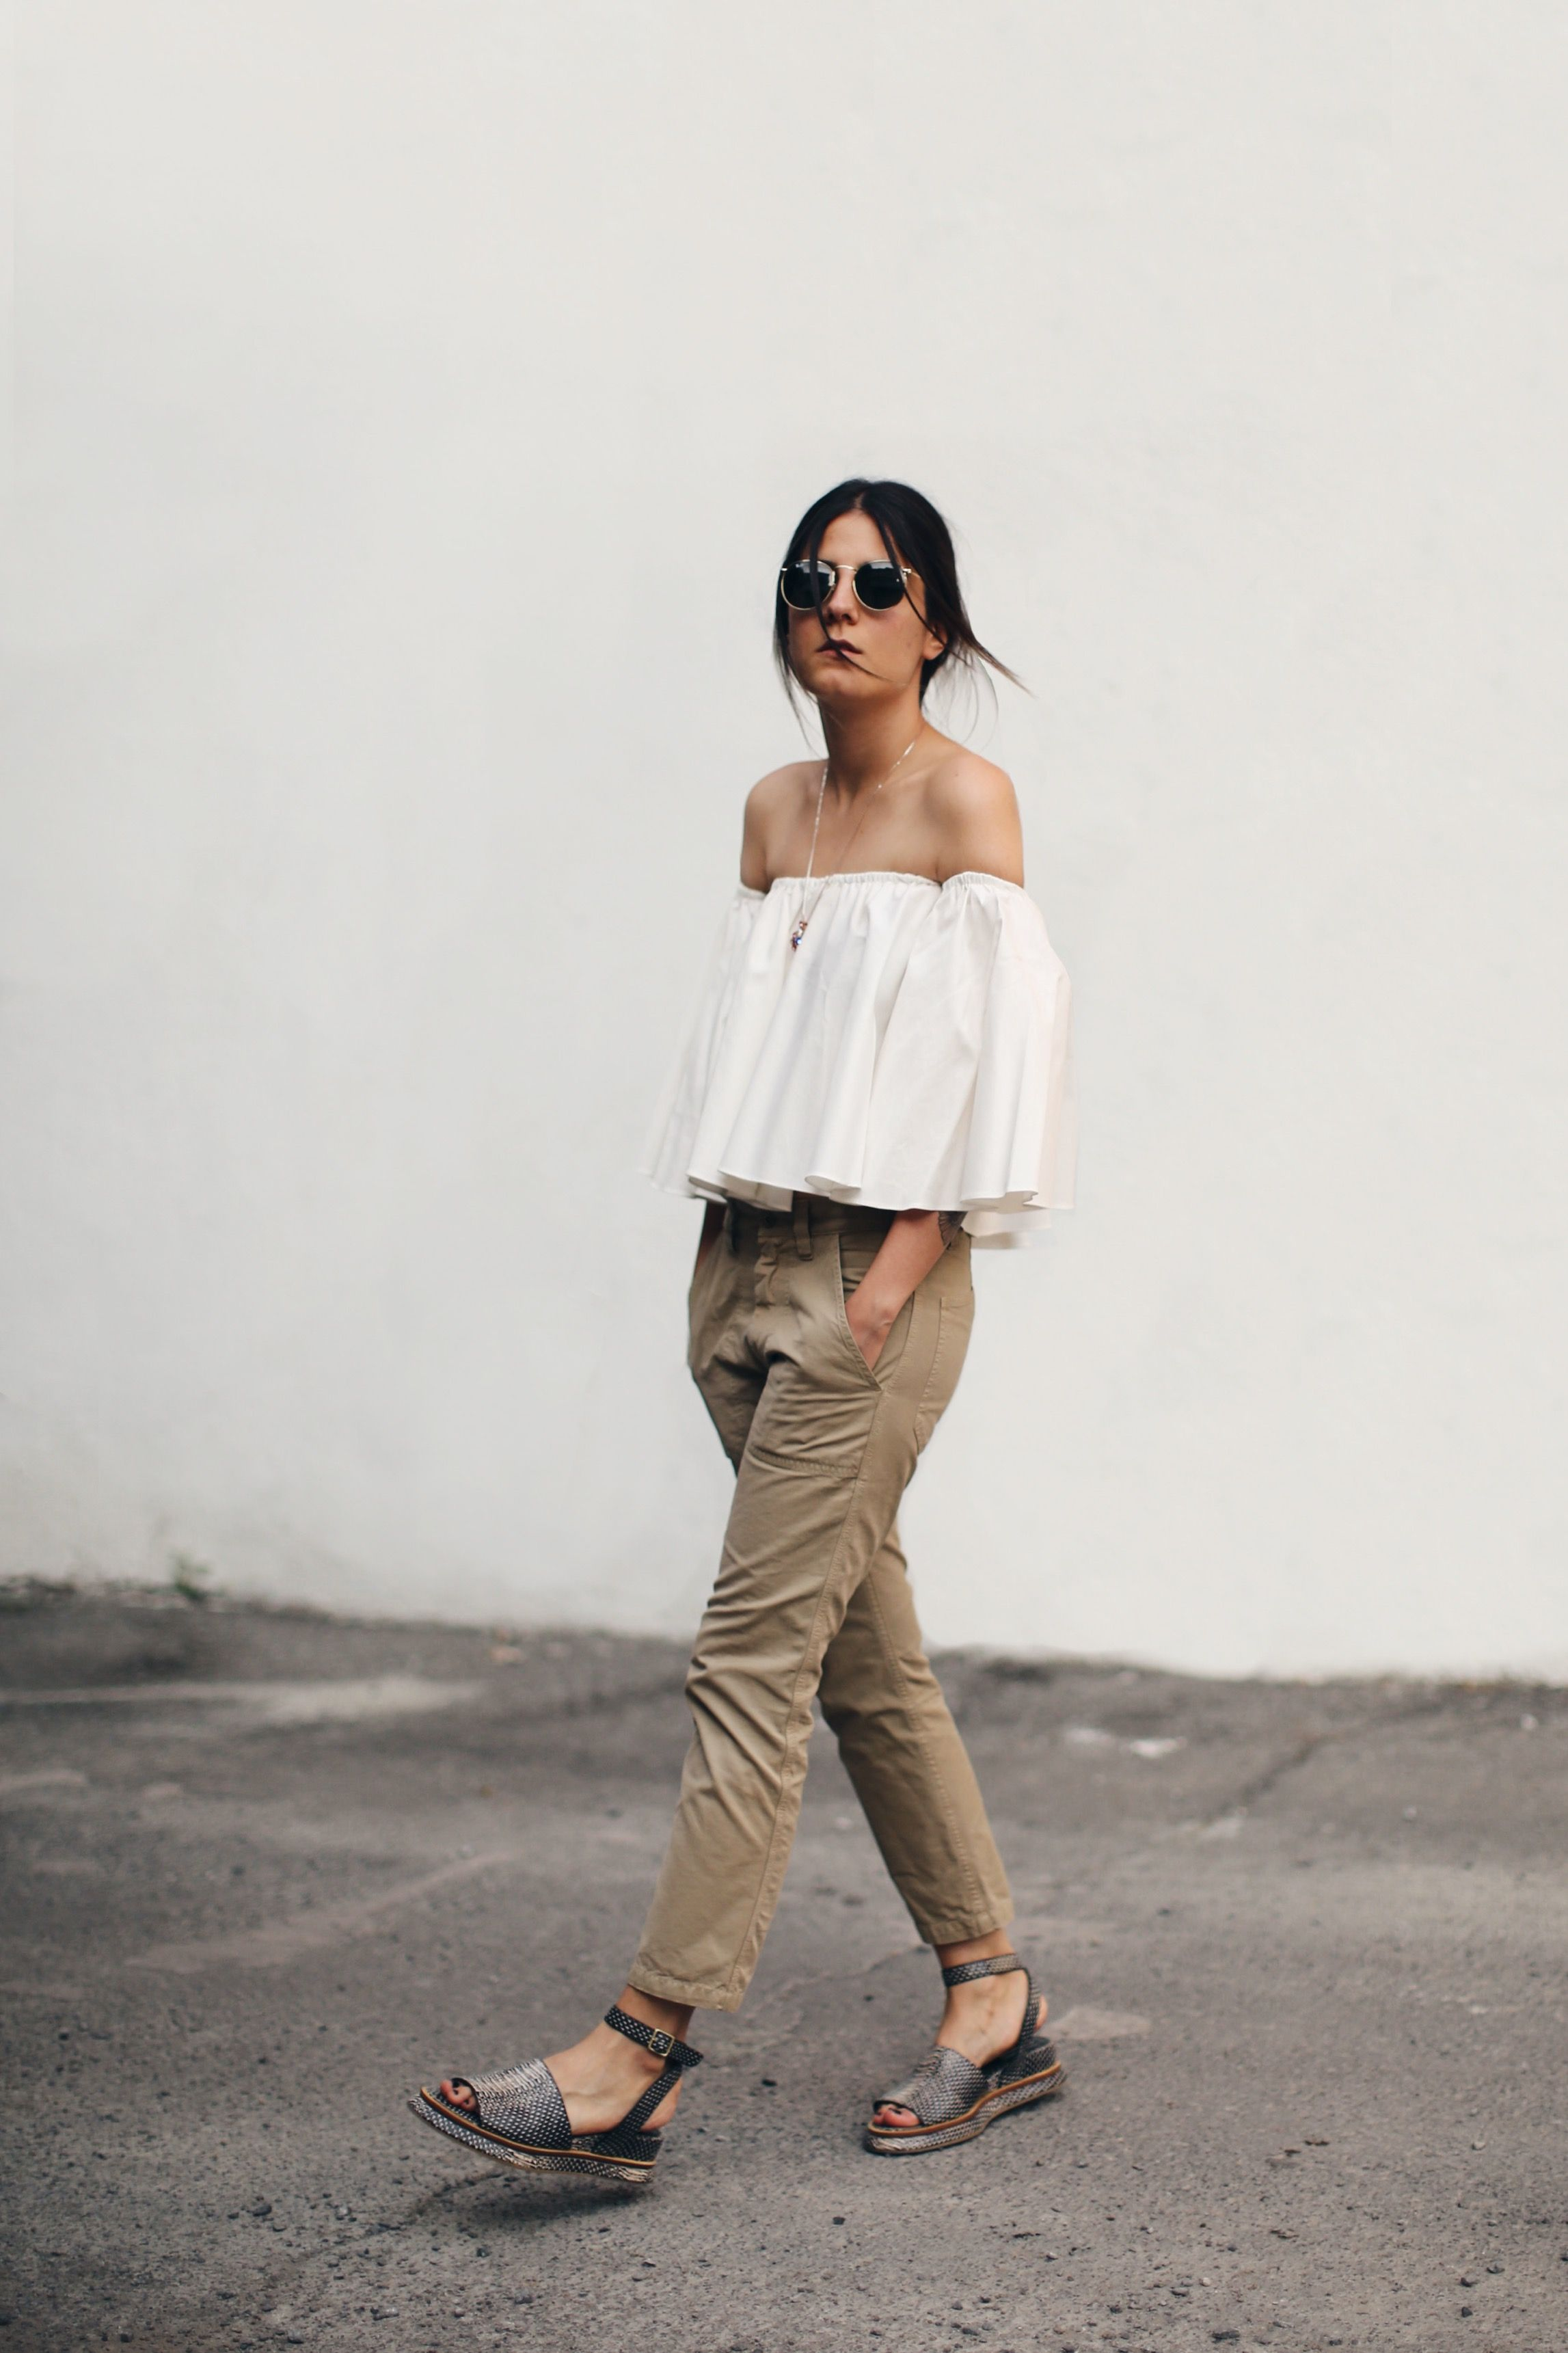 eacd1934f8 #Chic #Style - white off-the-shoulder frill top & cropped chinos, #summer  street style